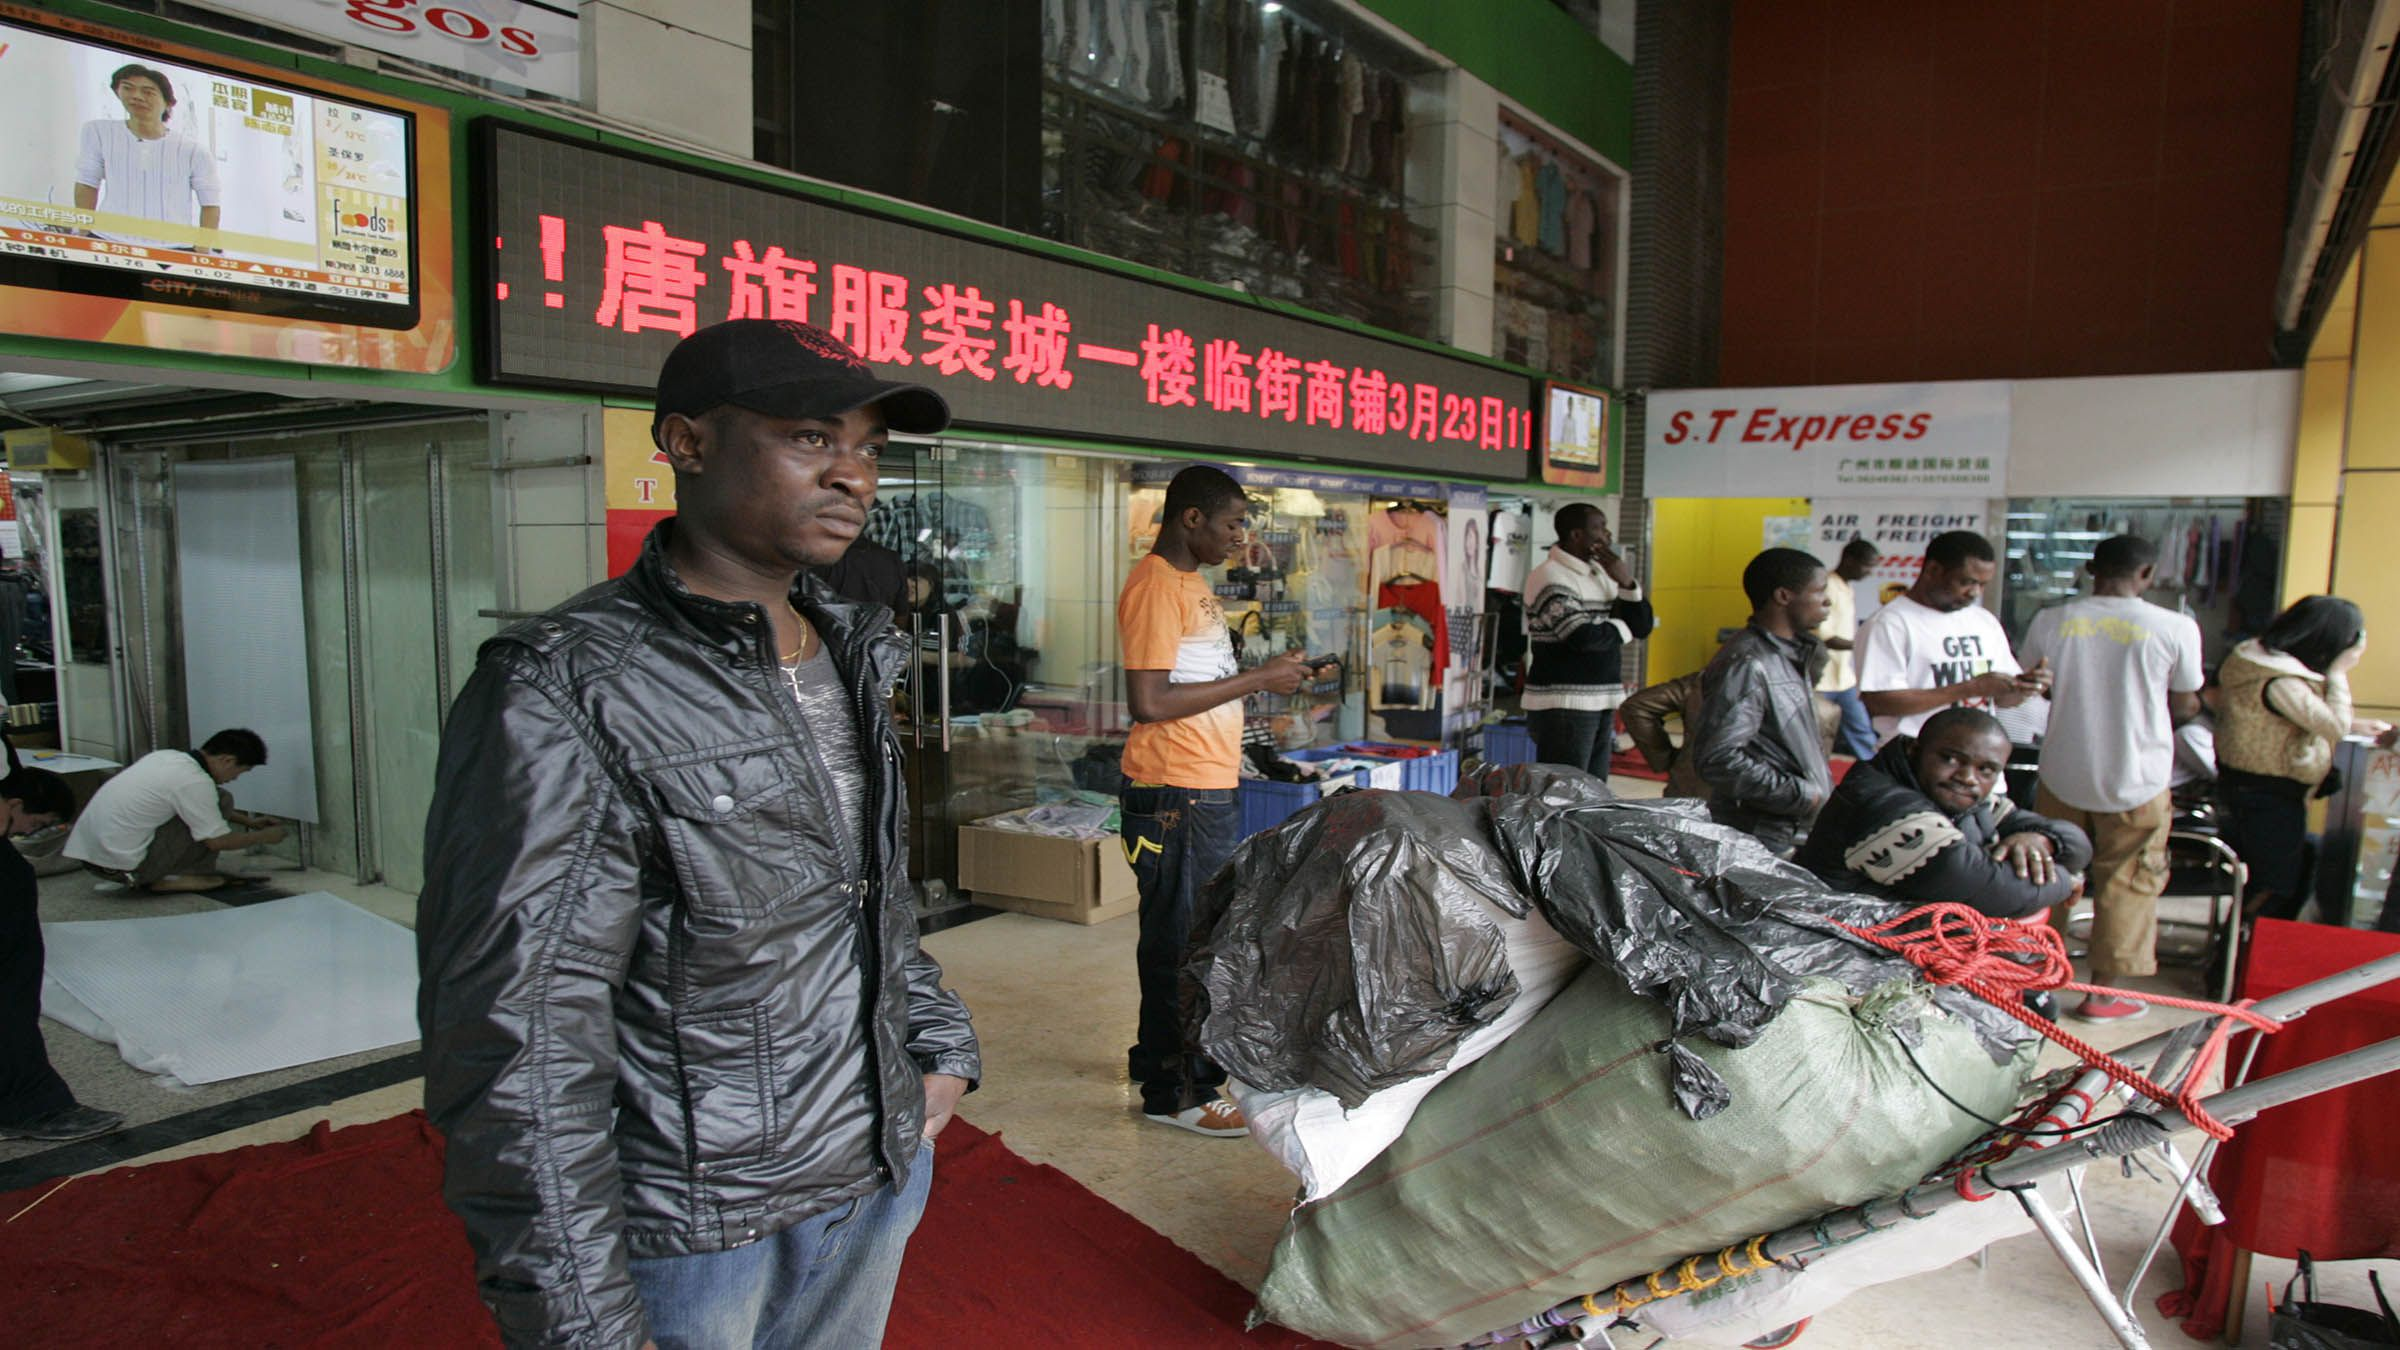 An African male stands nearby a offered mall in a southern Chinese city of Guangzhou in Guangdong operation Mar 27, 2009. In a past few years, tens of thousands of African and Arab traders have alive to trade hubs like Guangzhou and Yiwu to find their fortunes, sourcing inexpensive China-made products behind home to large markups in a growing, remunerative trade. Picture taken Mar 27, 2009. To compare underline FRICTION-CHINA/AFRICANS REUTERS/James Pomfret (CHINA POLITICS BUSINESS) - RTR26Y9O